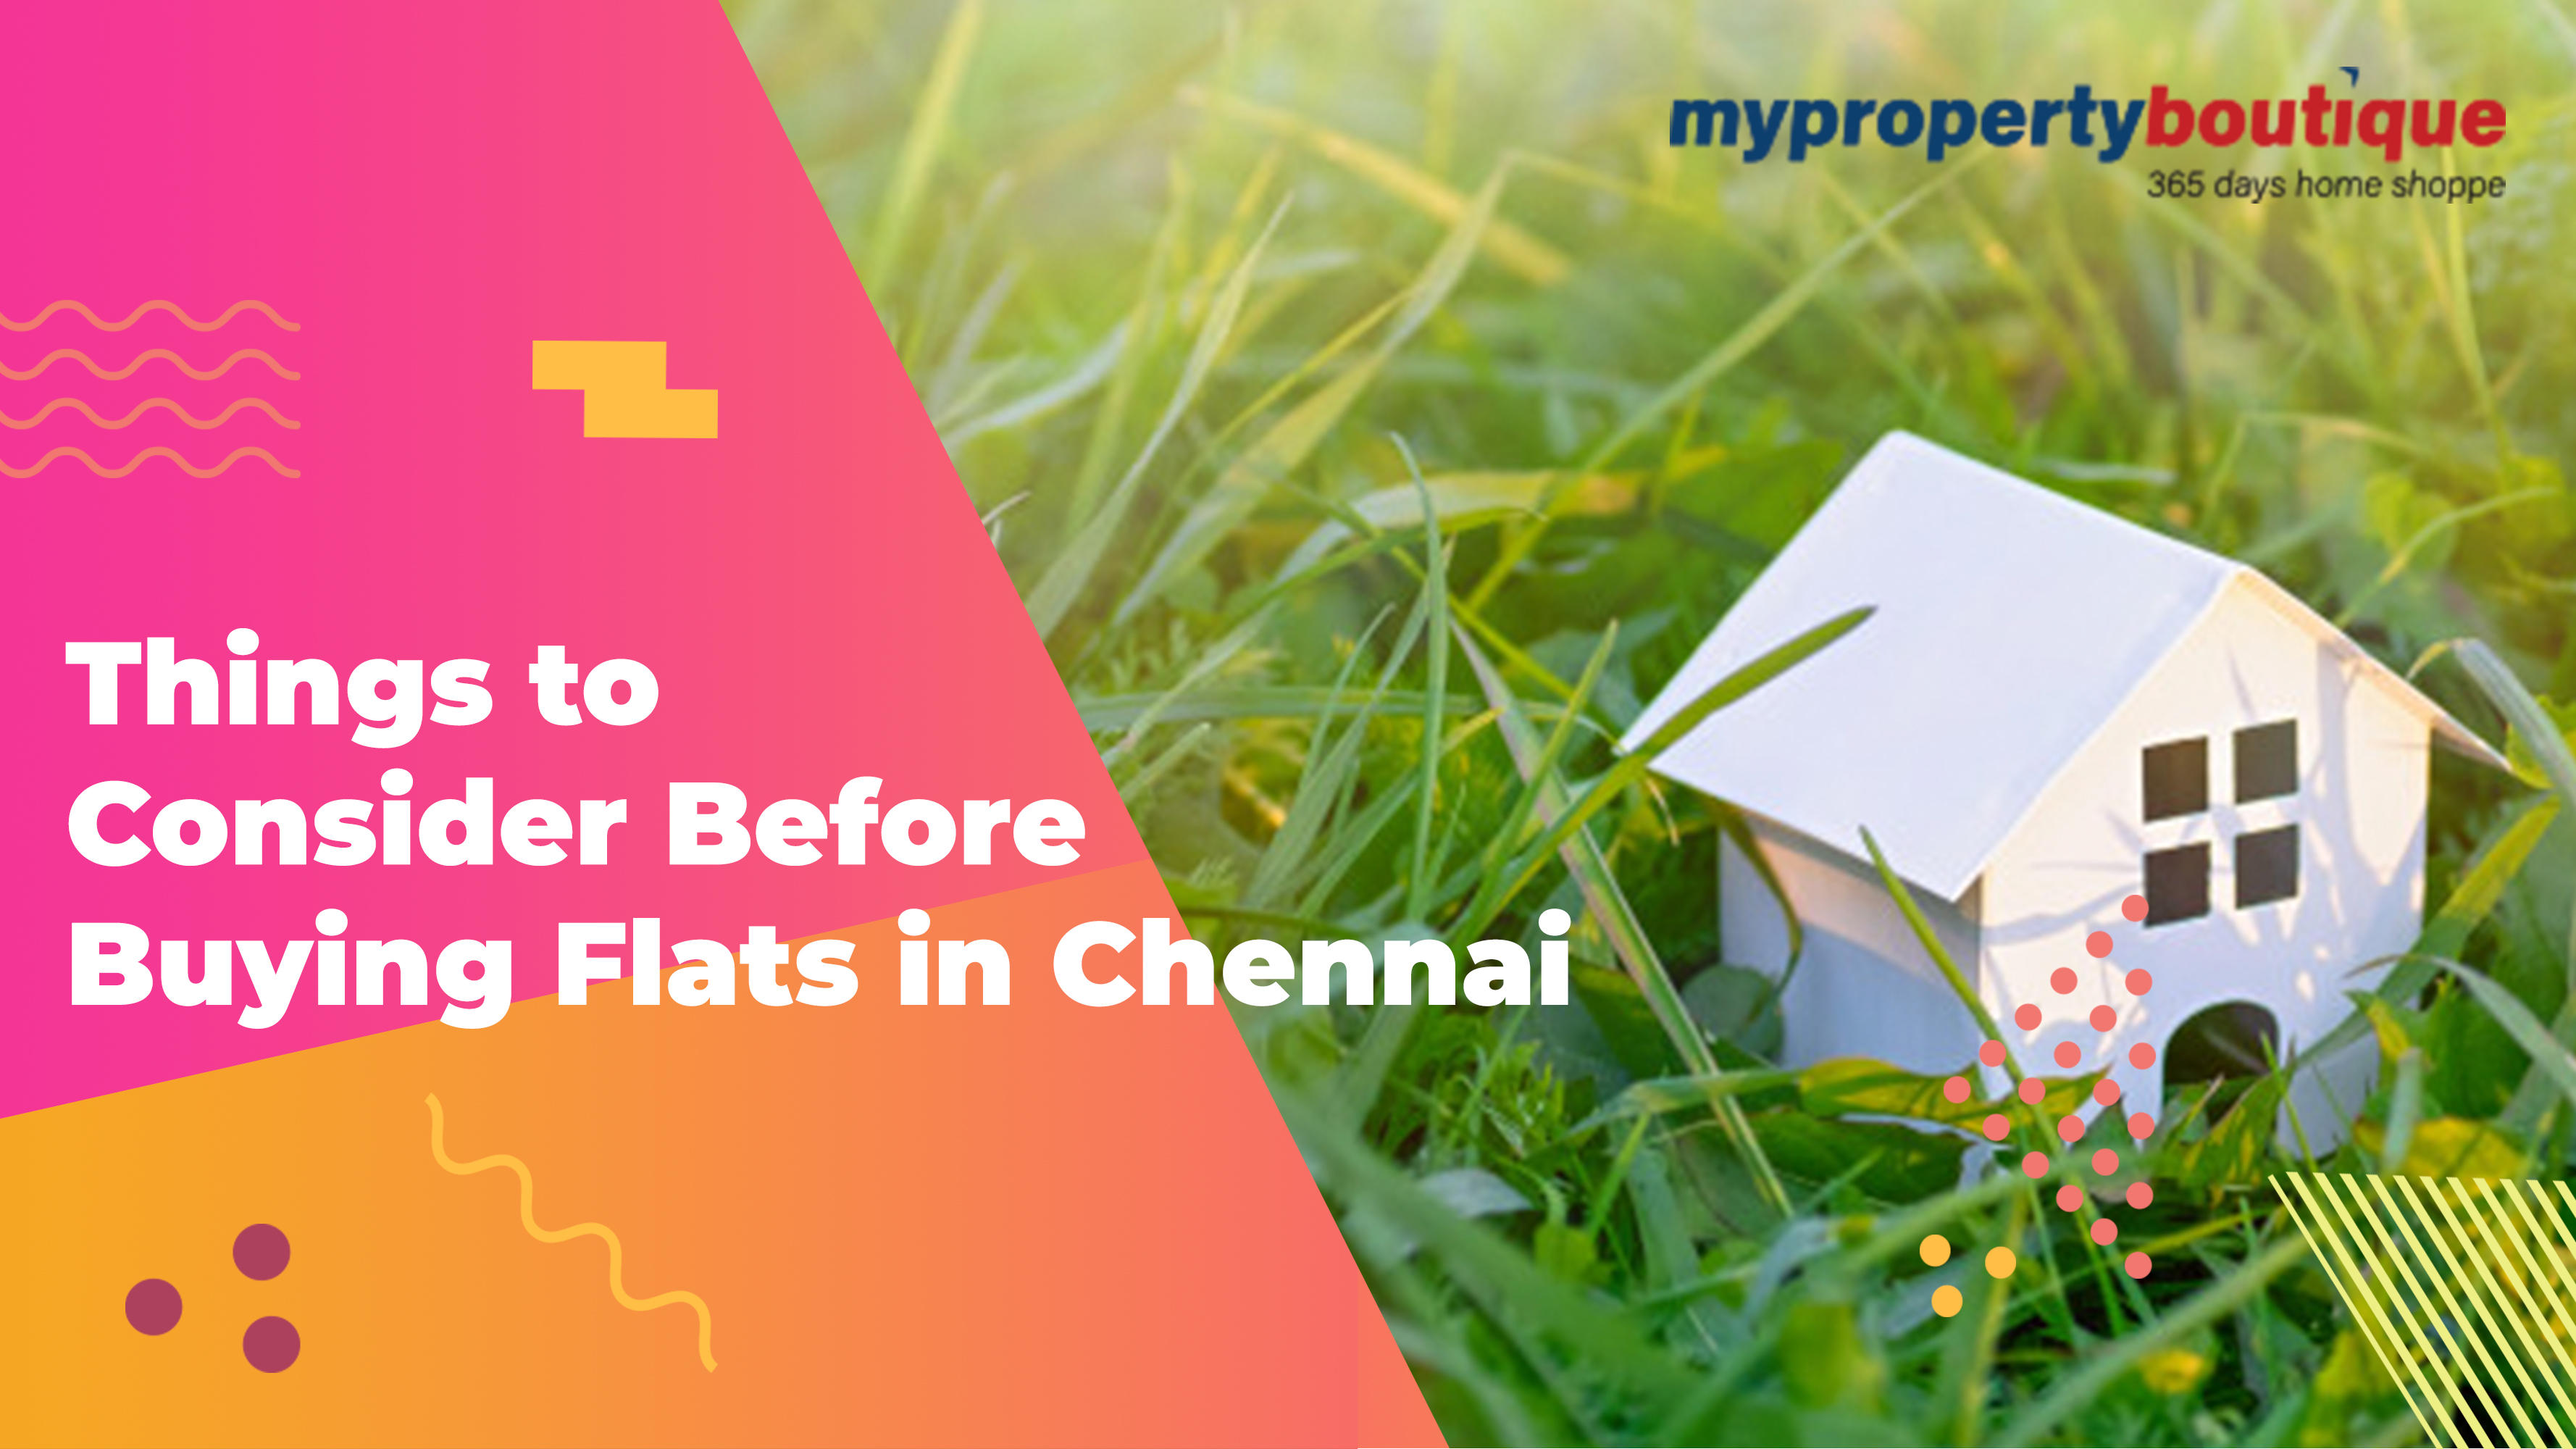 Things to Consider Before Buying Flats in Chennai